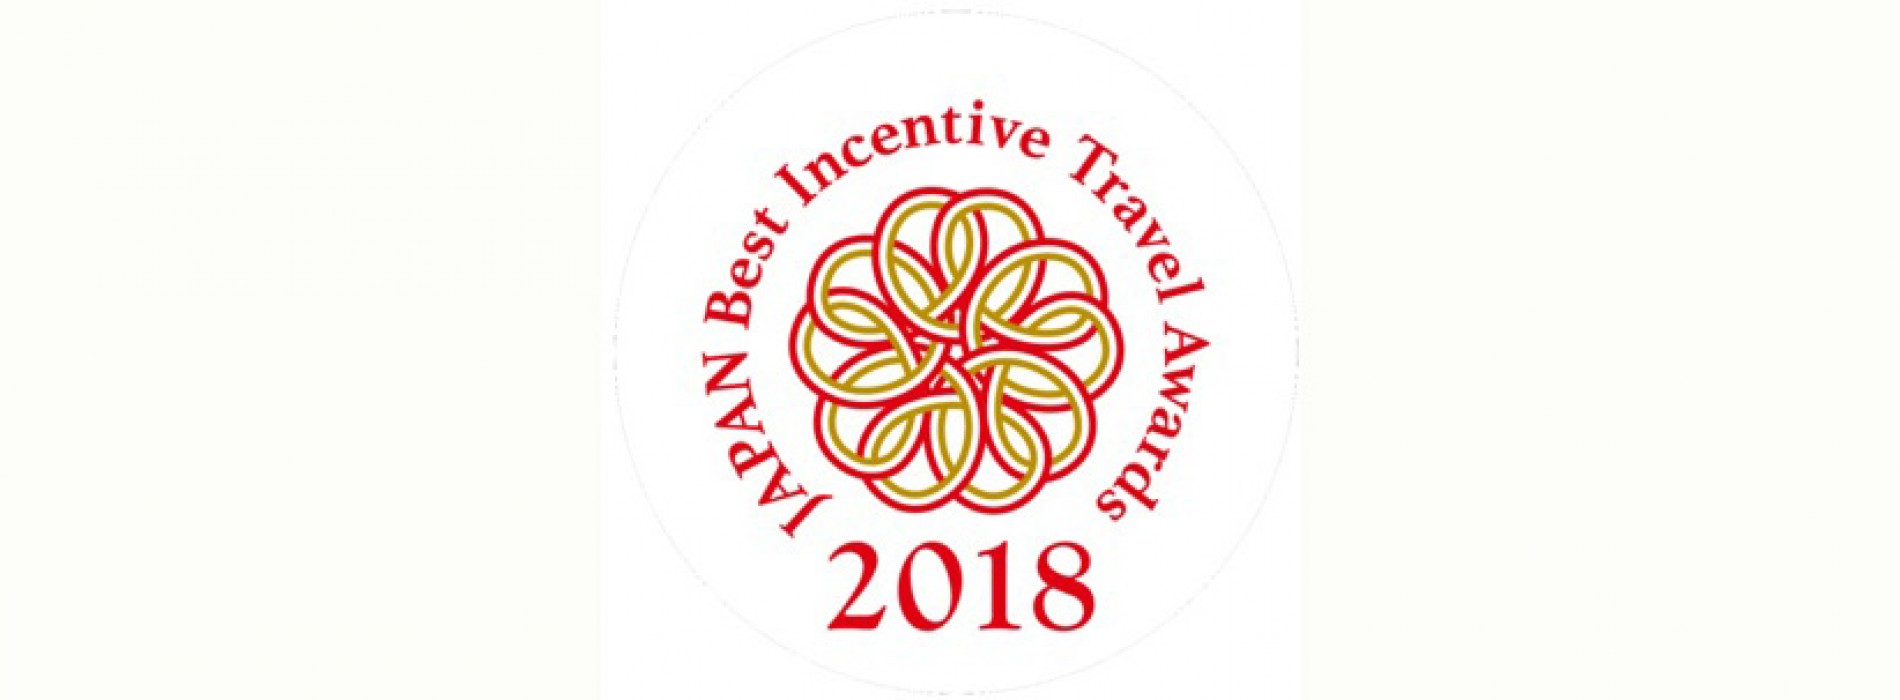 Japan Best Incentive Travel Awards 2018 announces winners